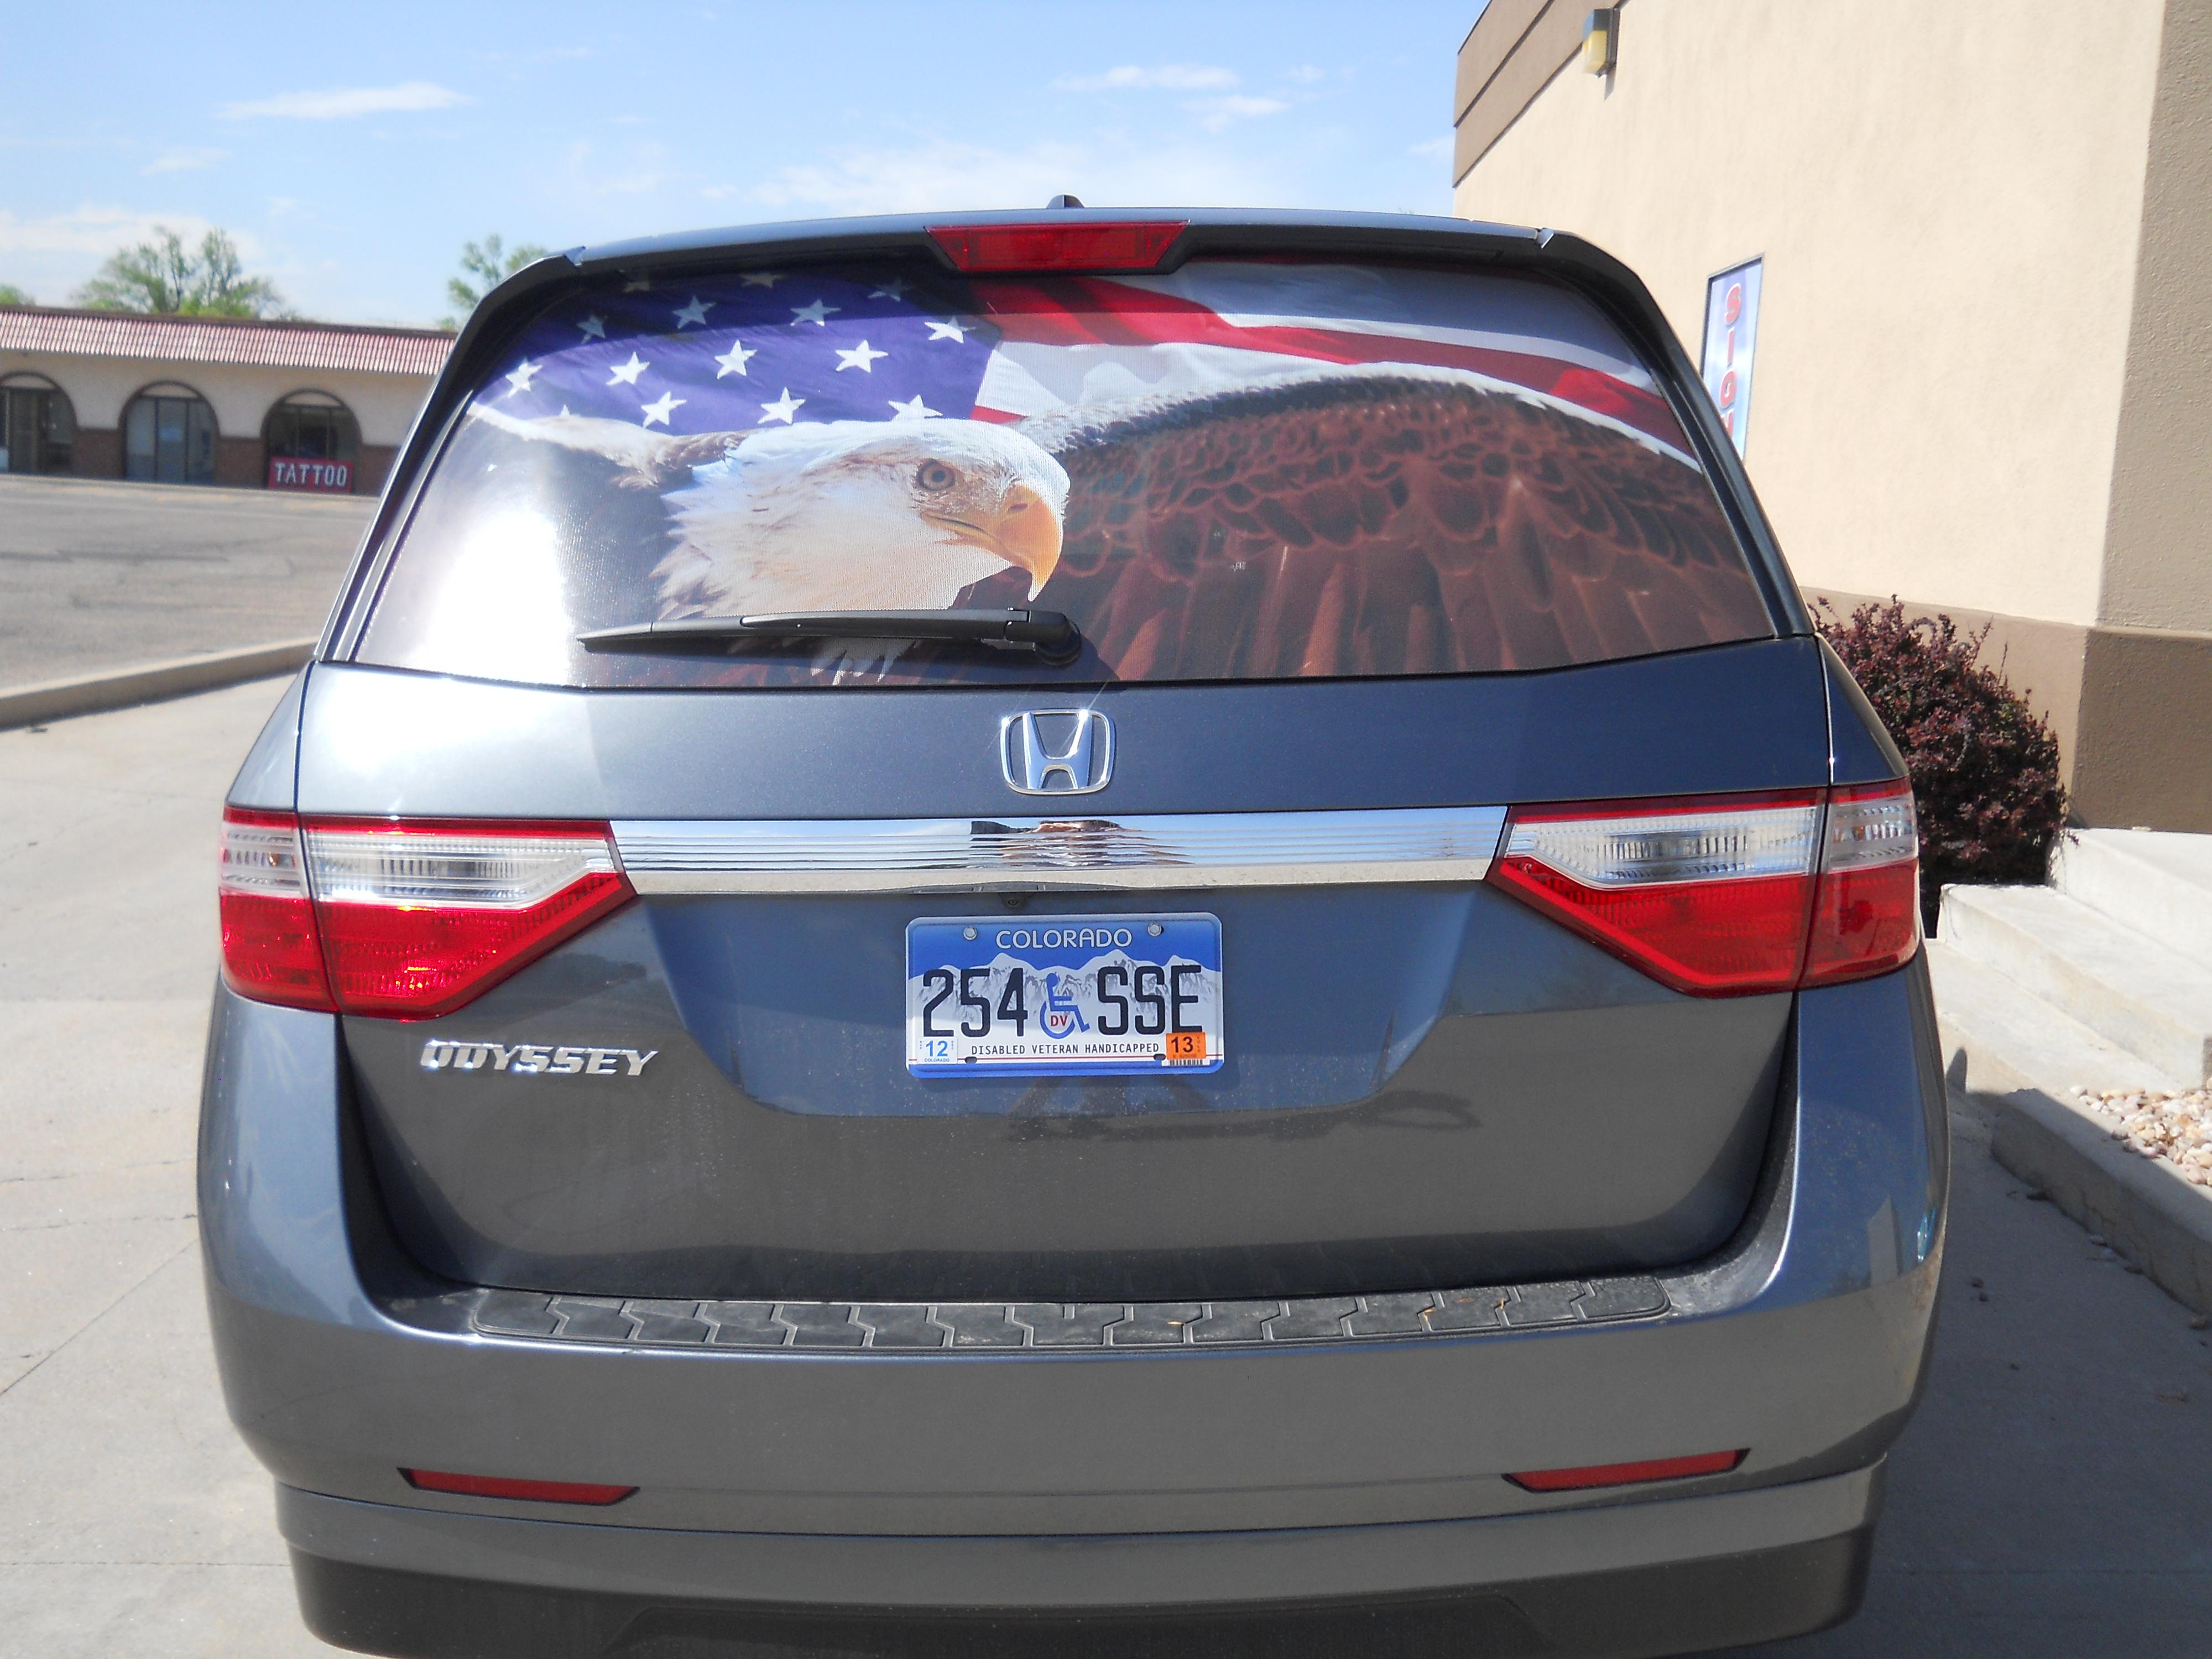 Full Color Back Window Graphic.jpg